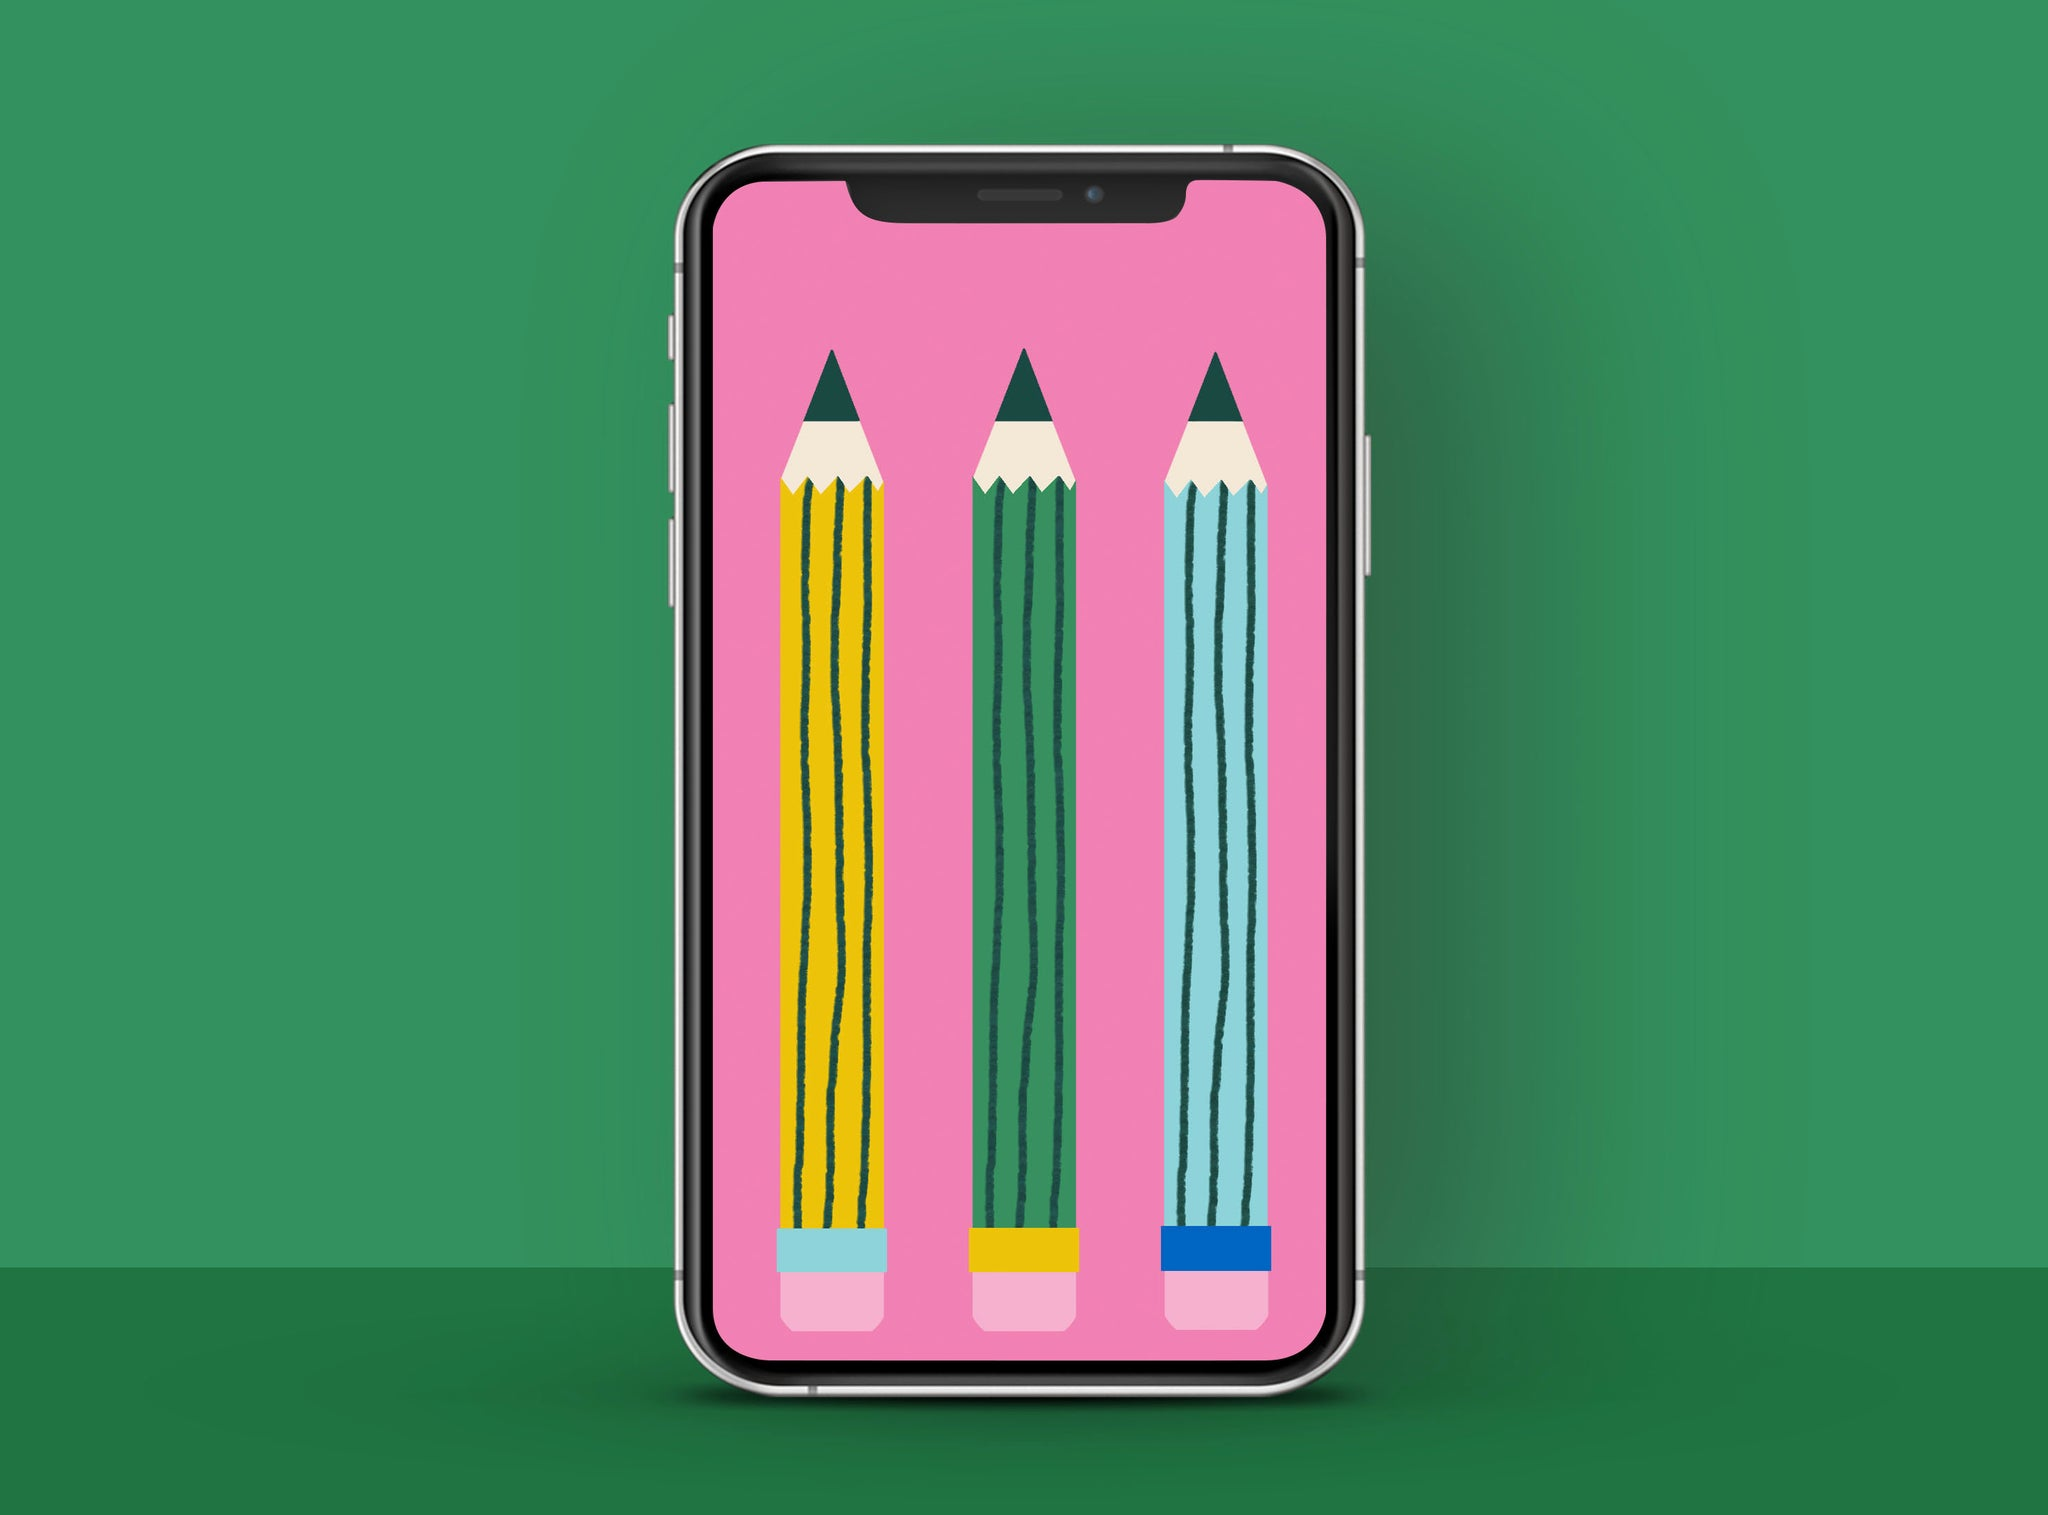 Free HD phone wallpaper with colourful illustrated pencils   Raspberry Blossom